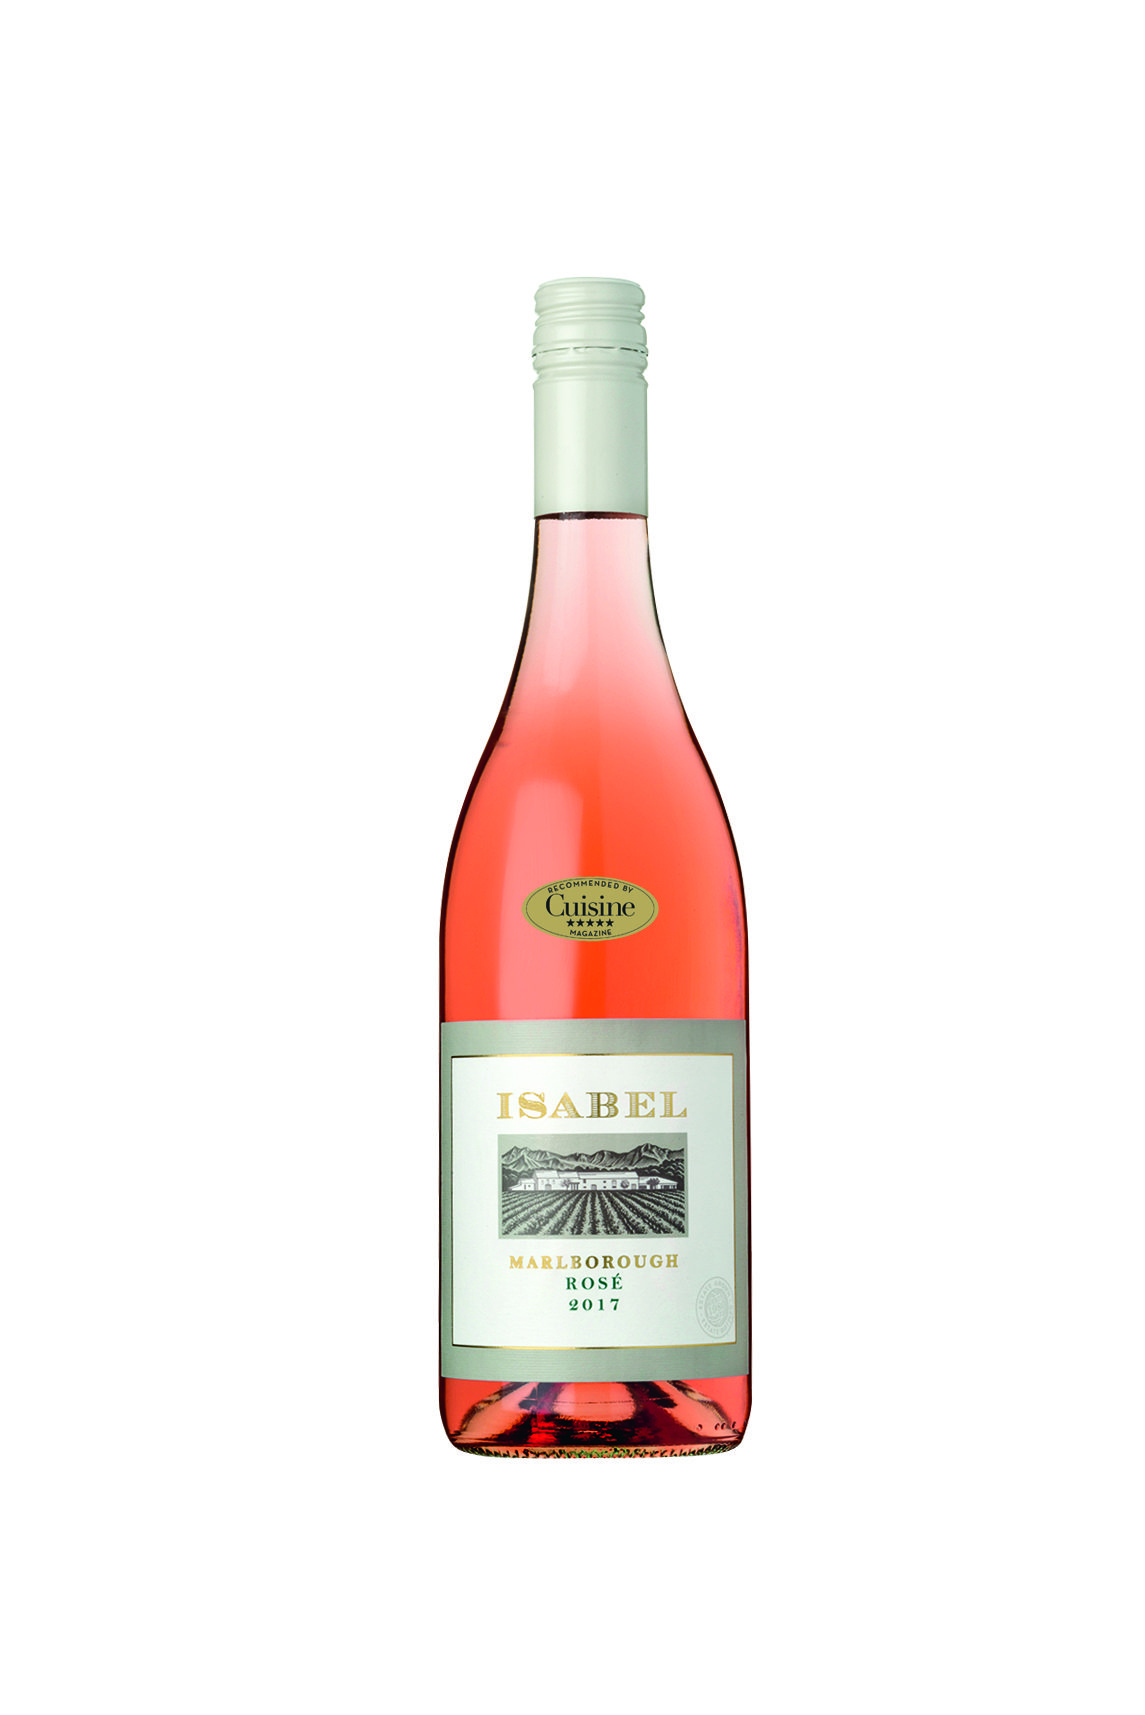 Isabel marlborough ros 2017 cuisine wine for Cuisine rose